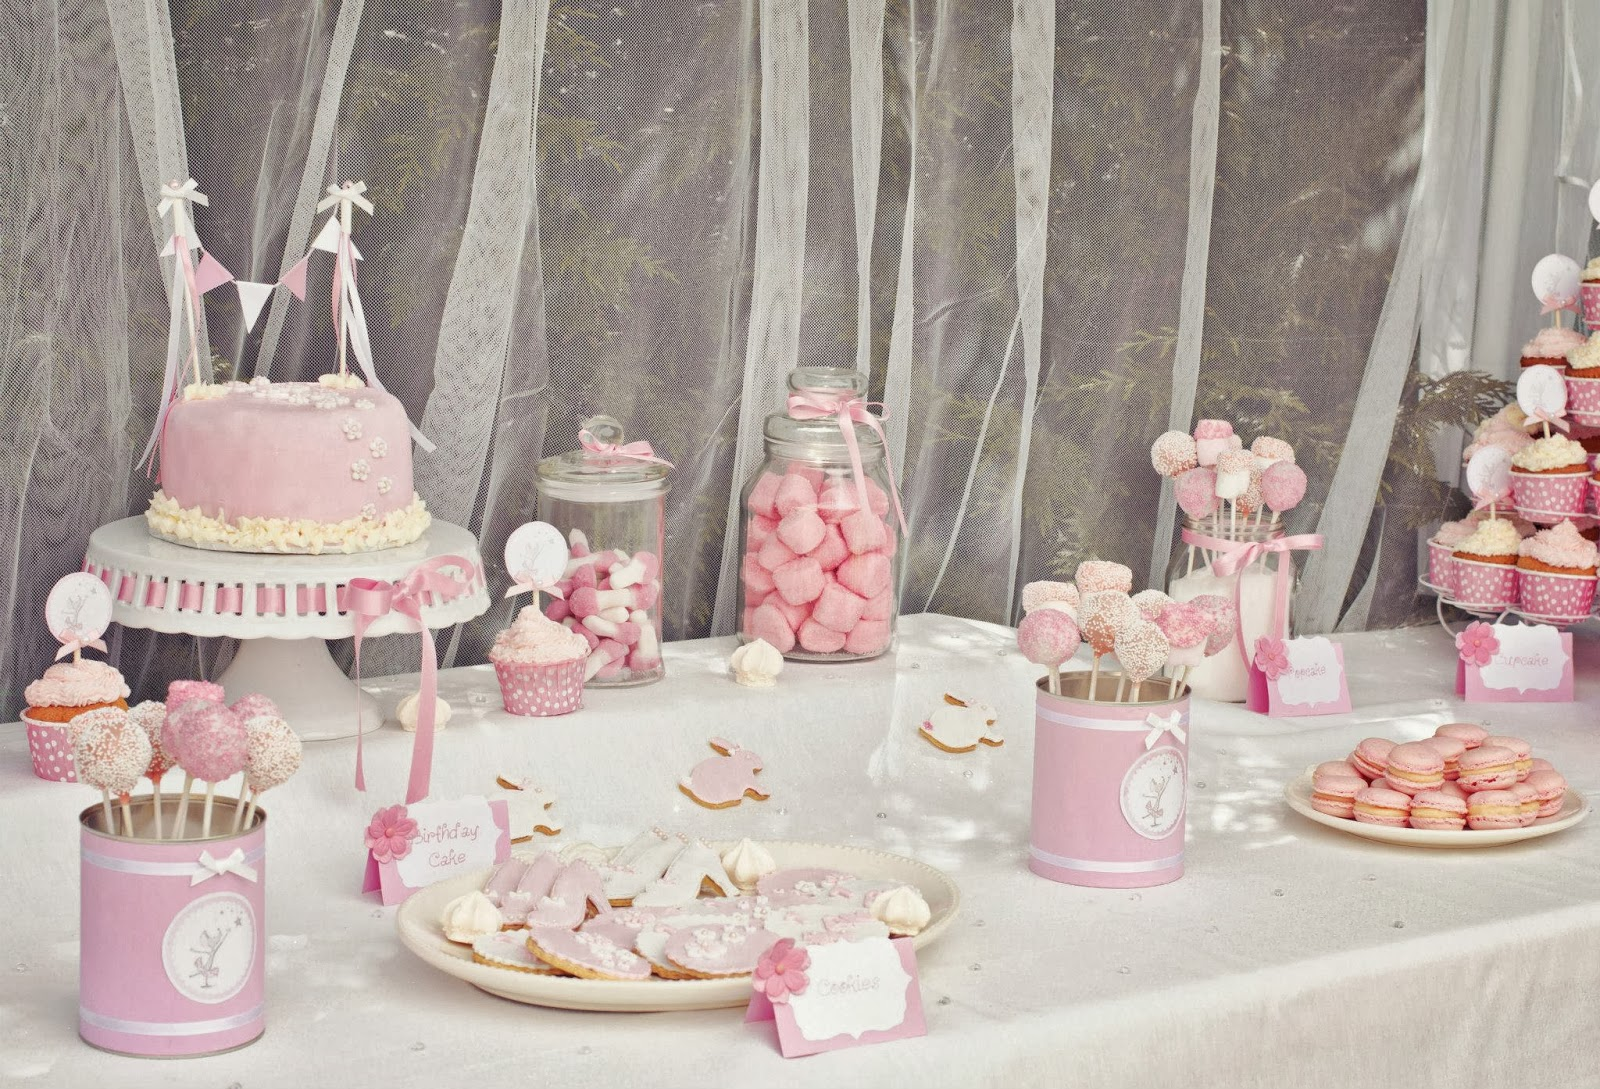 Super Anniversaire fille Archives - Page 3 sur 7 - Le Candy Bar QZ65